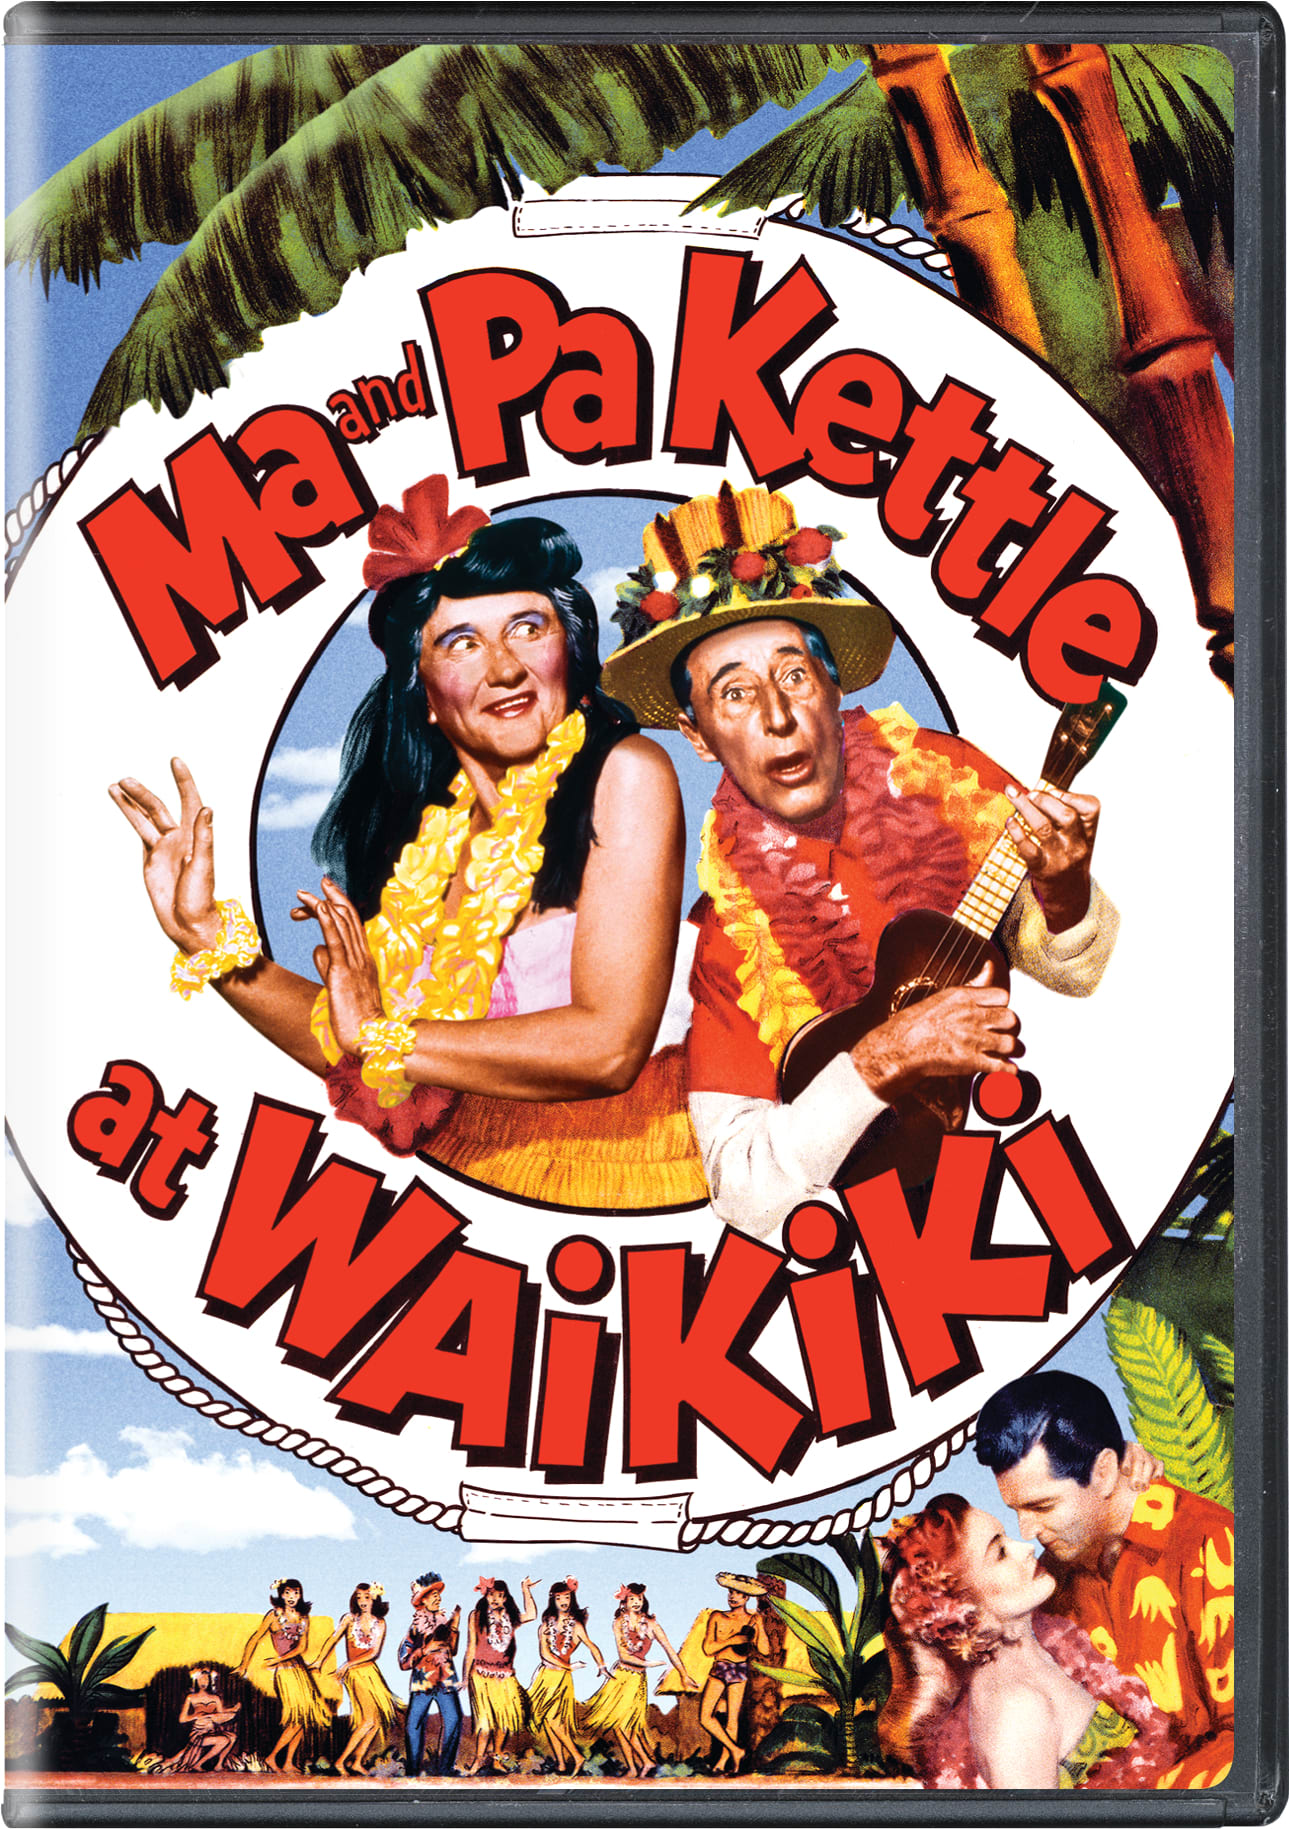 Ma and Pa Kettle at Waikiki [DVD]